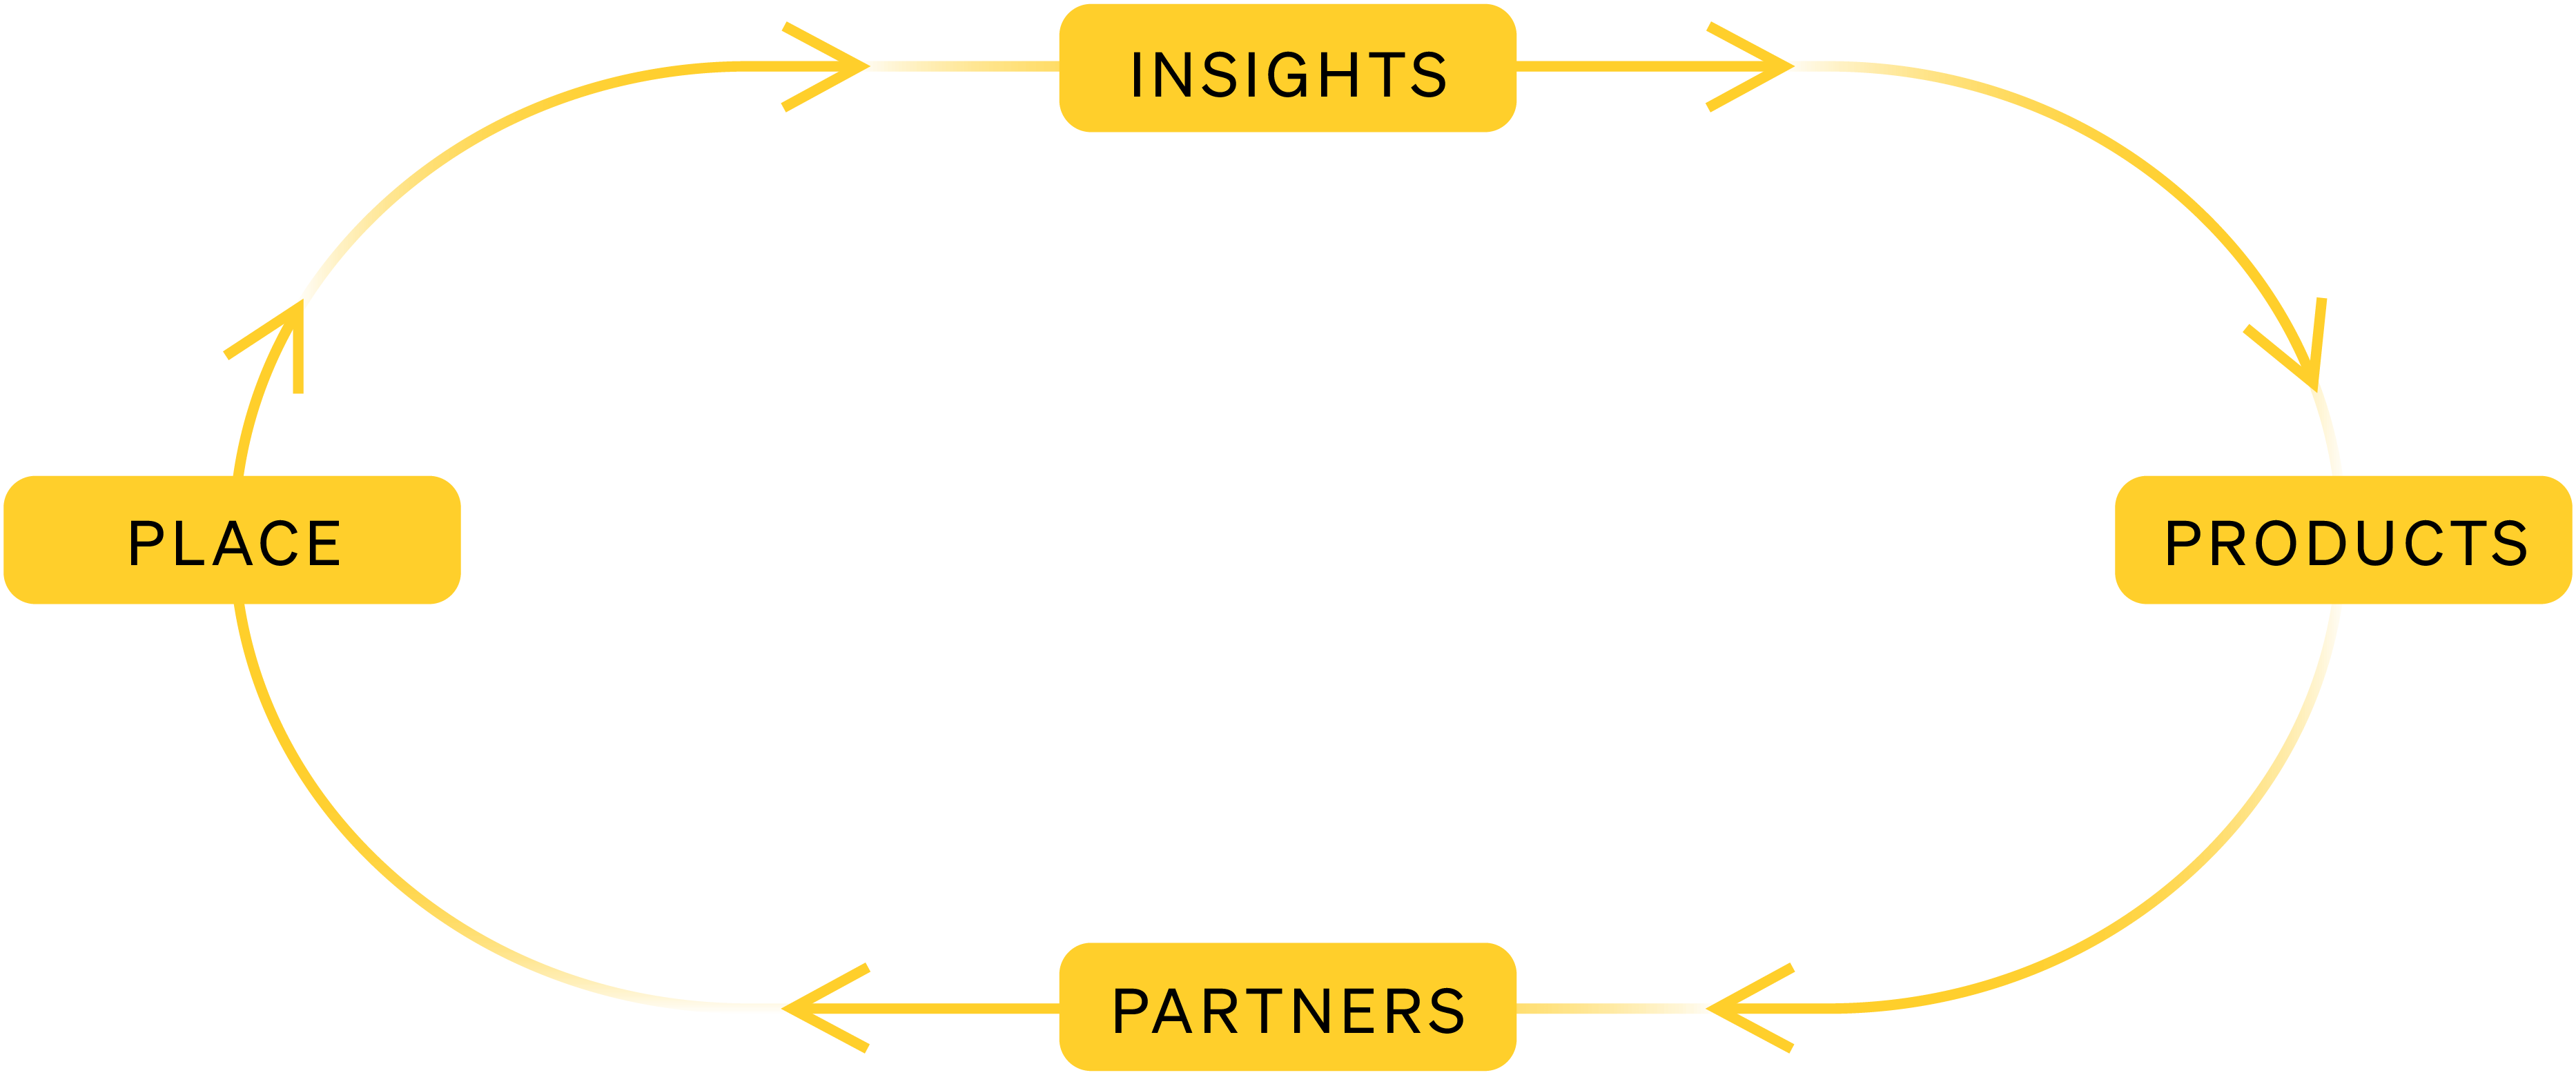 Four labels, insights, products, partners and place, surround a fifth label: Our Team